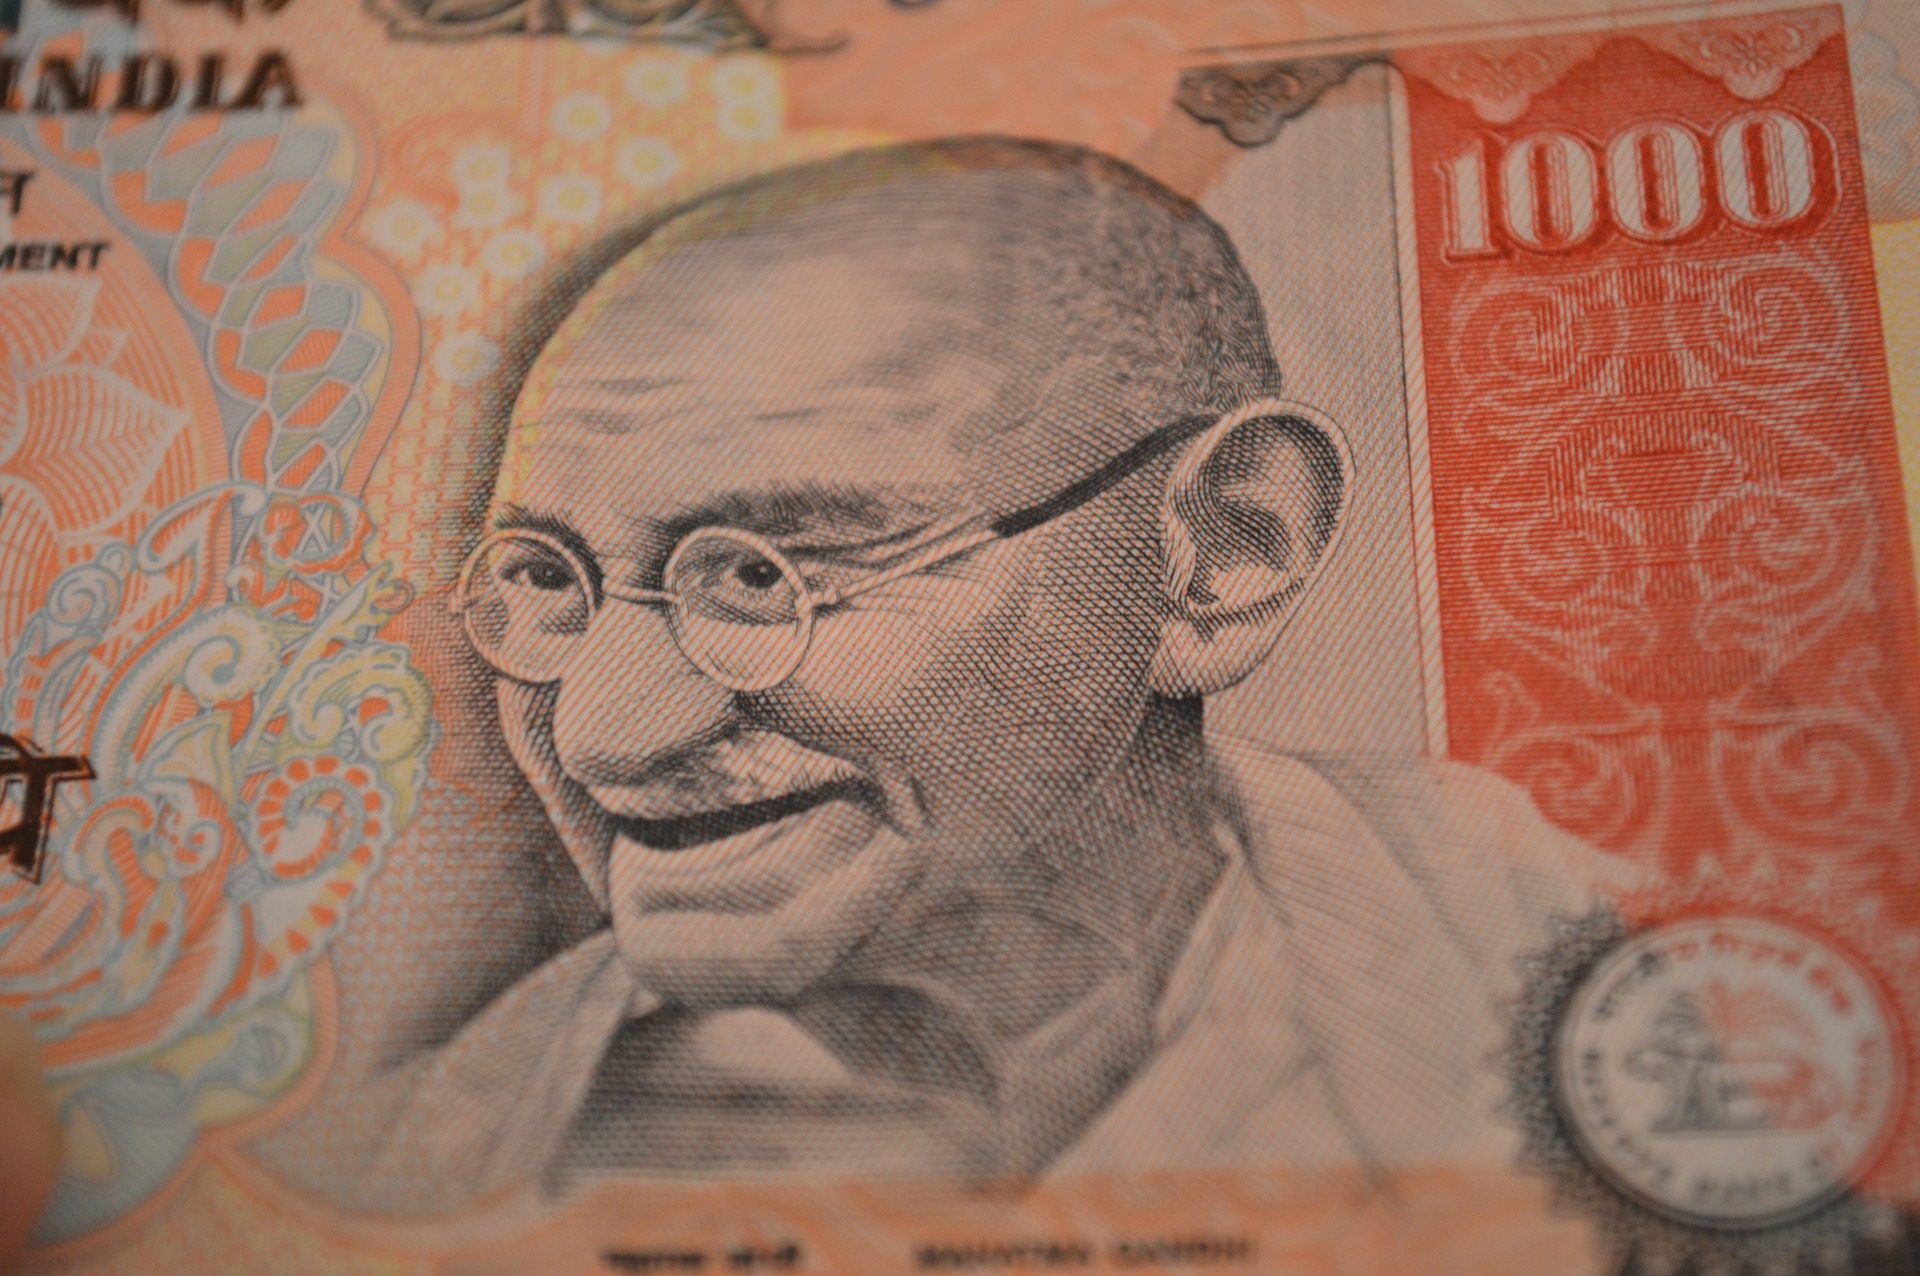 photo of Gandhi on banknote